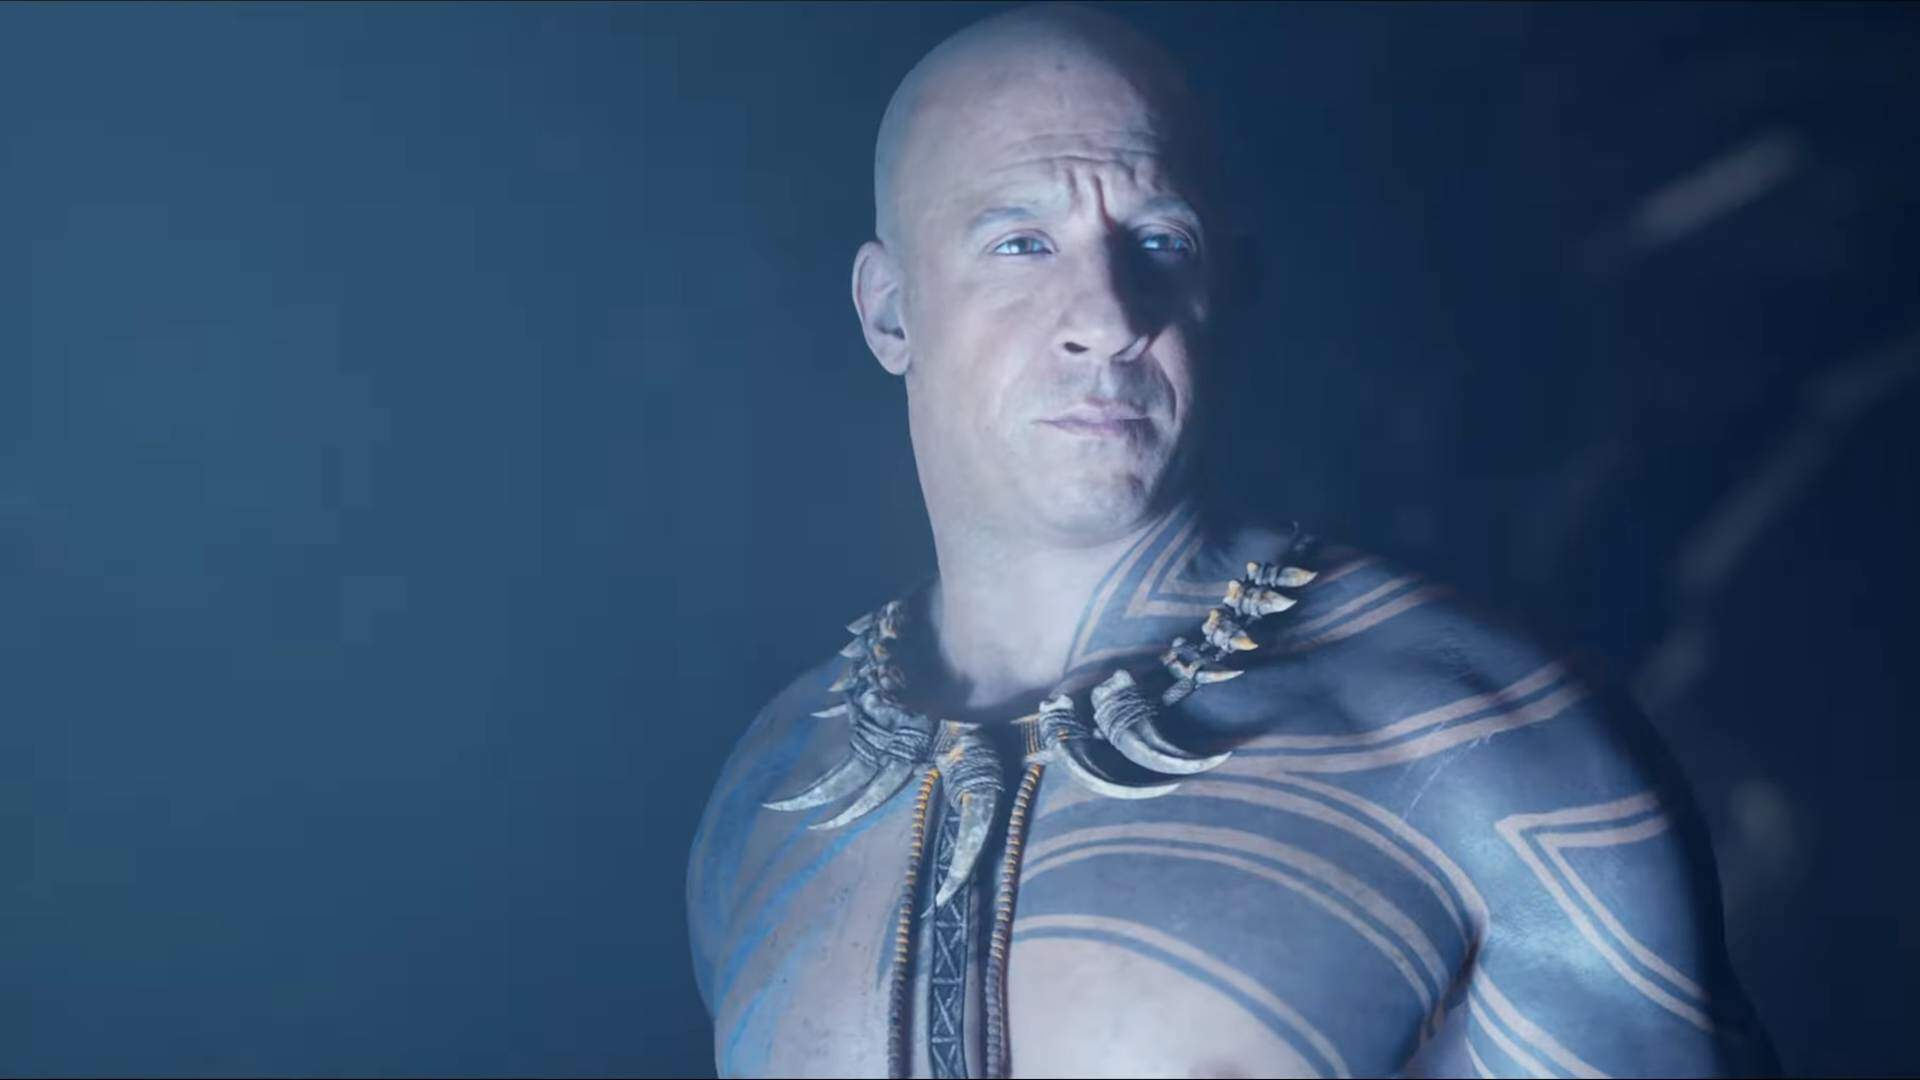 Vin Diesel Doesn't Just Appear in Ark 2, He's Also Its Executive Producer